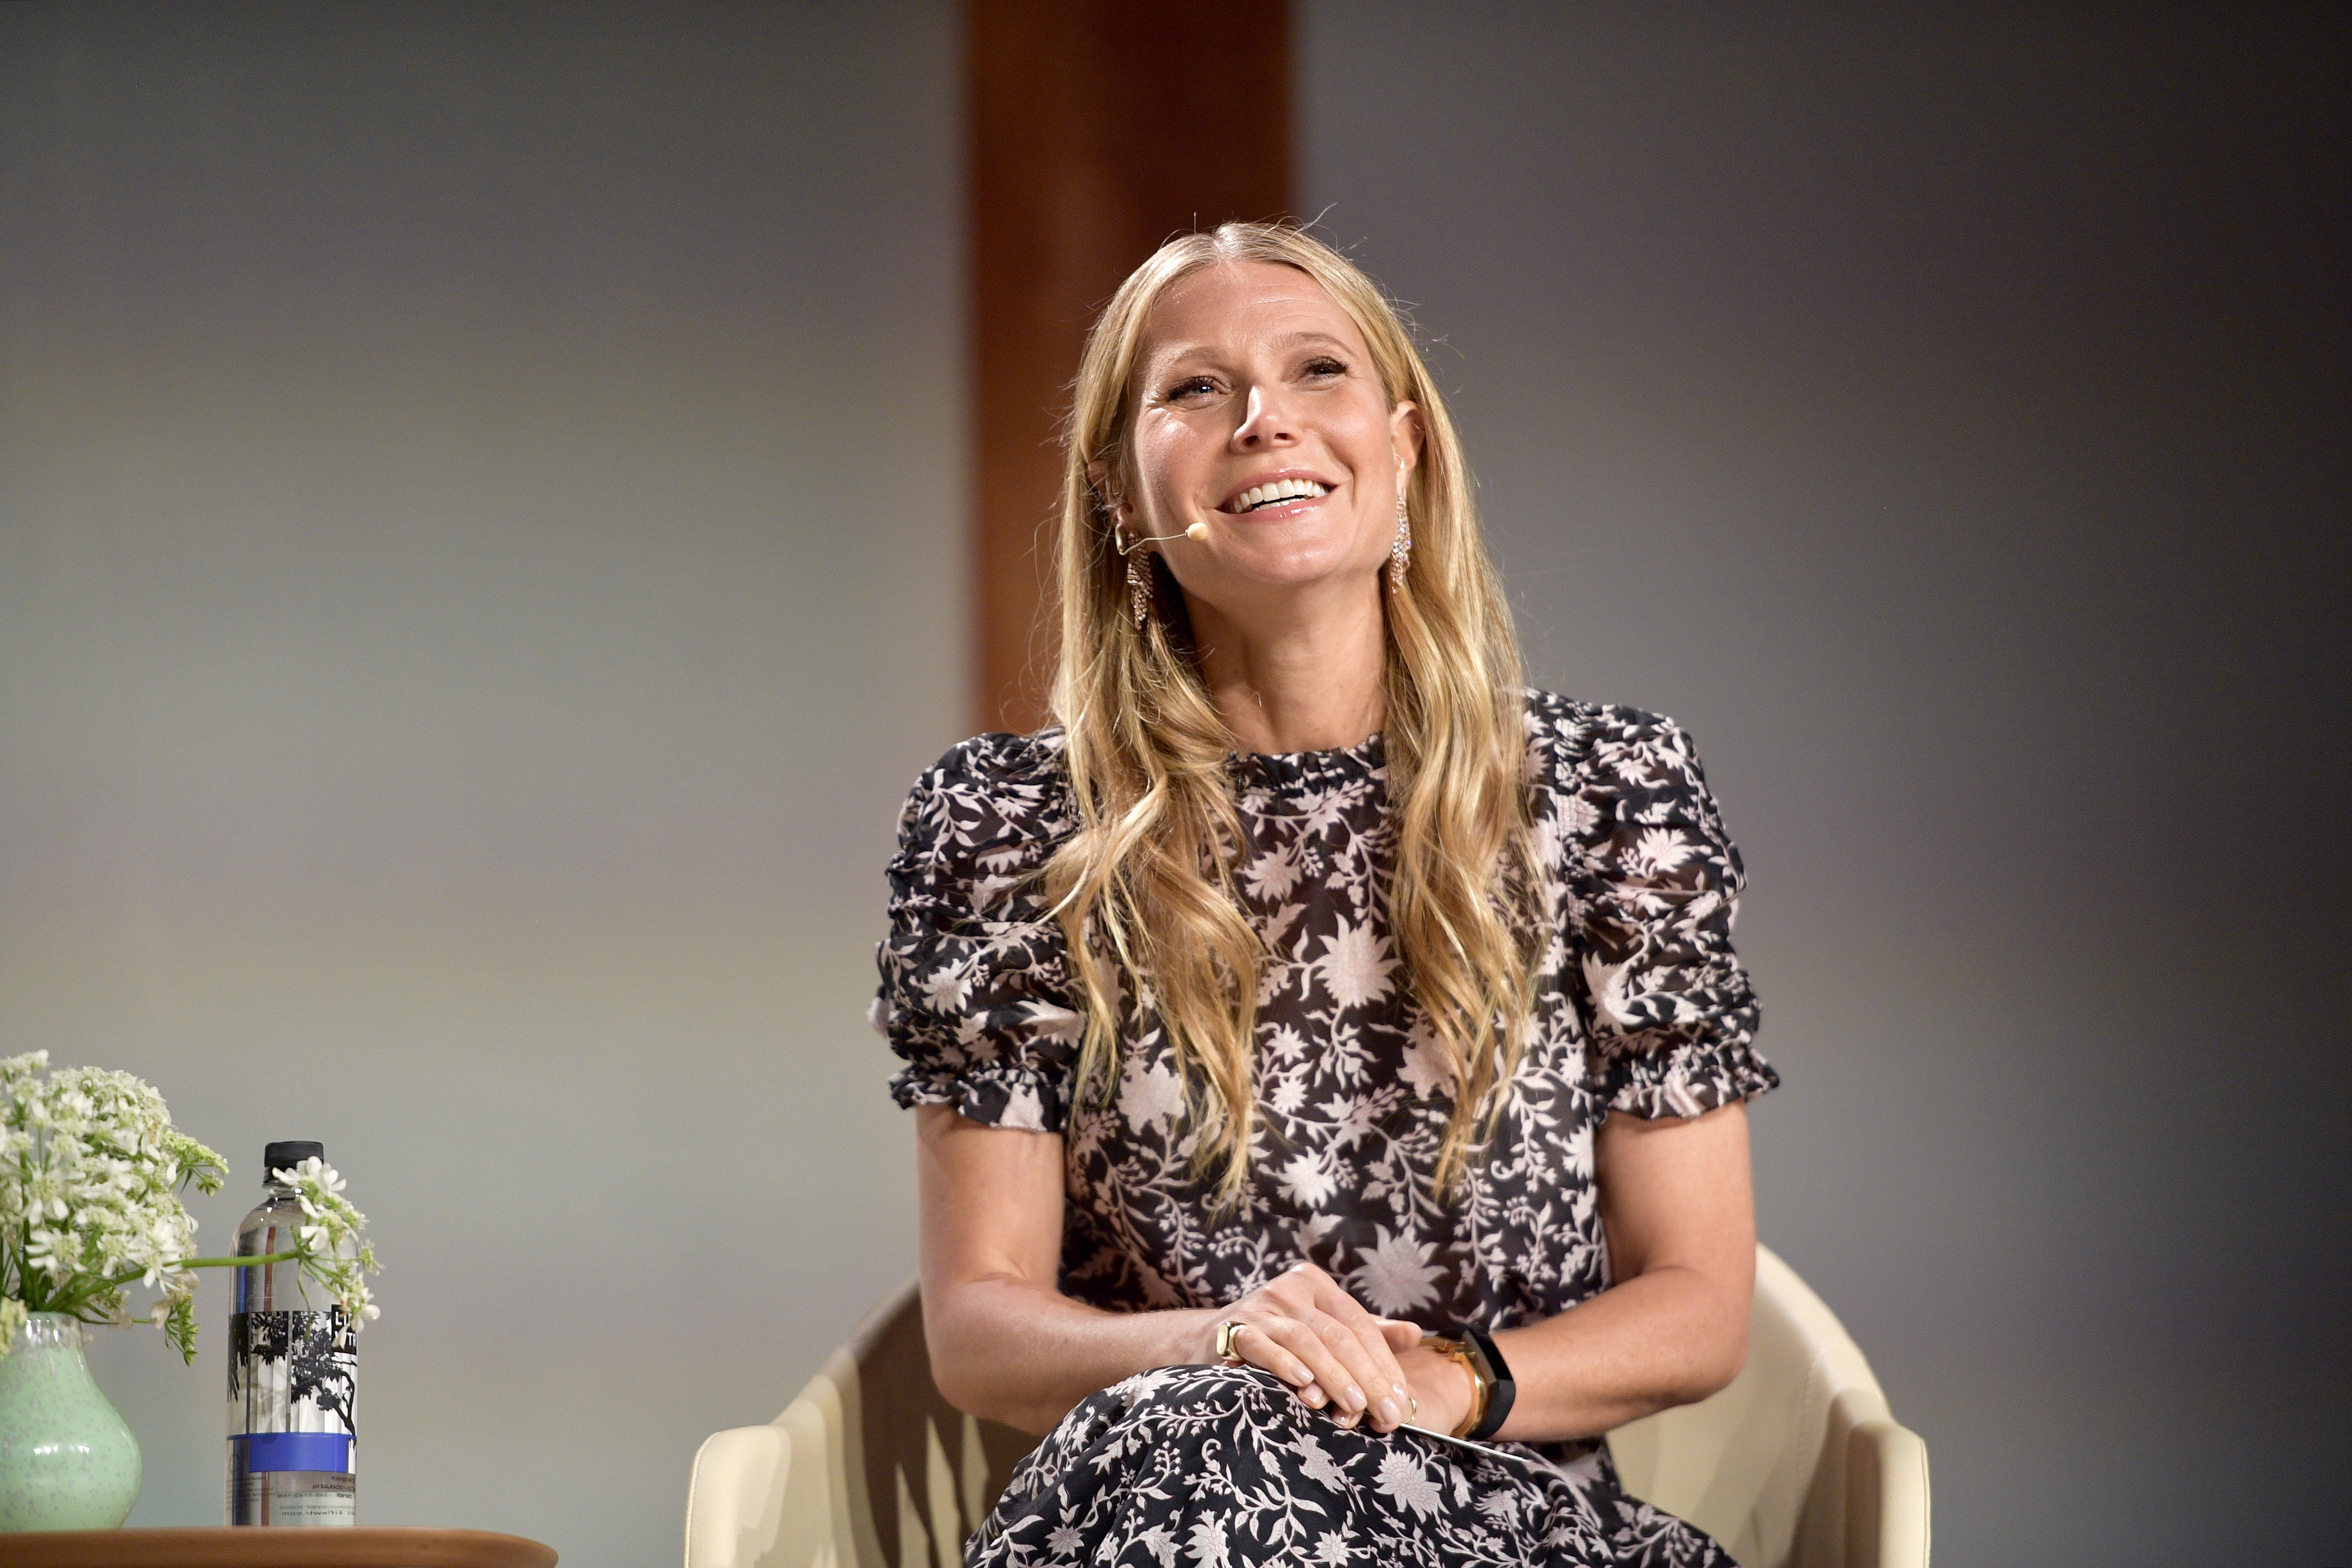 Image Credits: Getty Images / Matt Winkelmeyer | Gwyneth Paltrow speaks onstage at the In goop Health Summit at 3Labs on June 9, 2018 in Culver City, California.